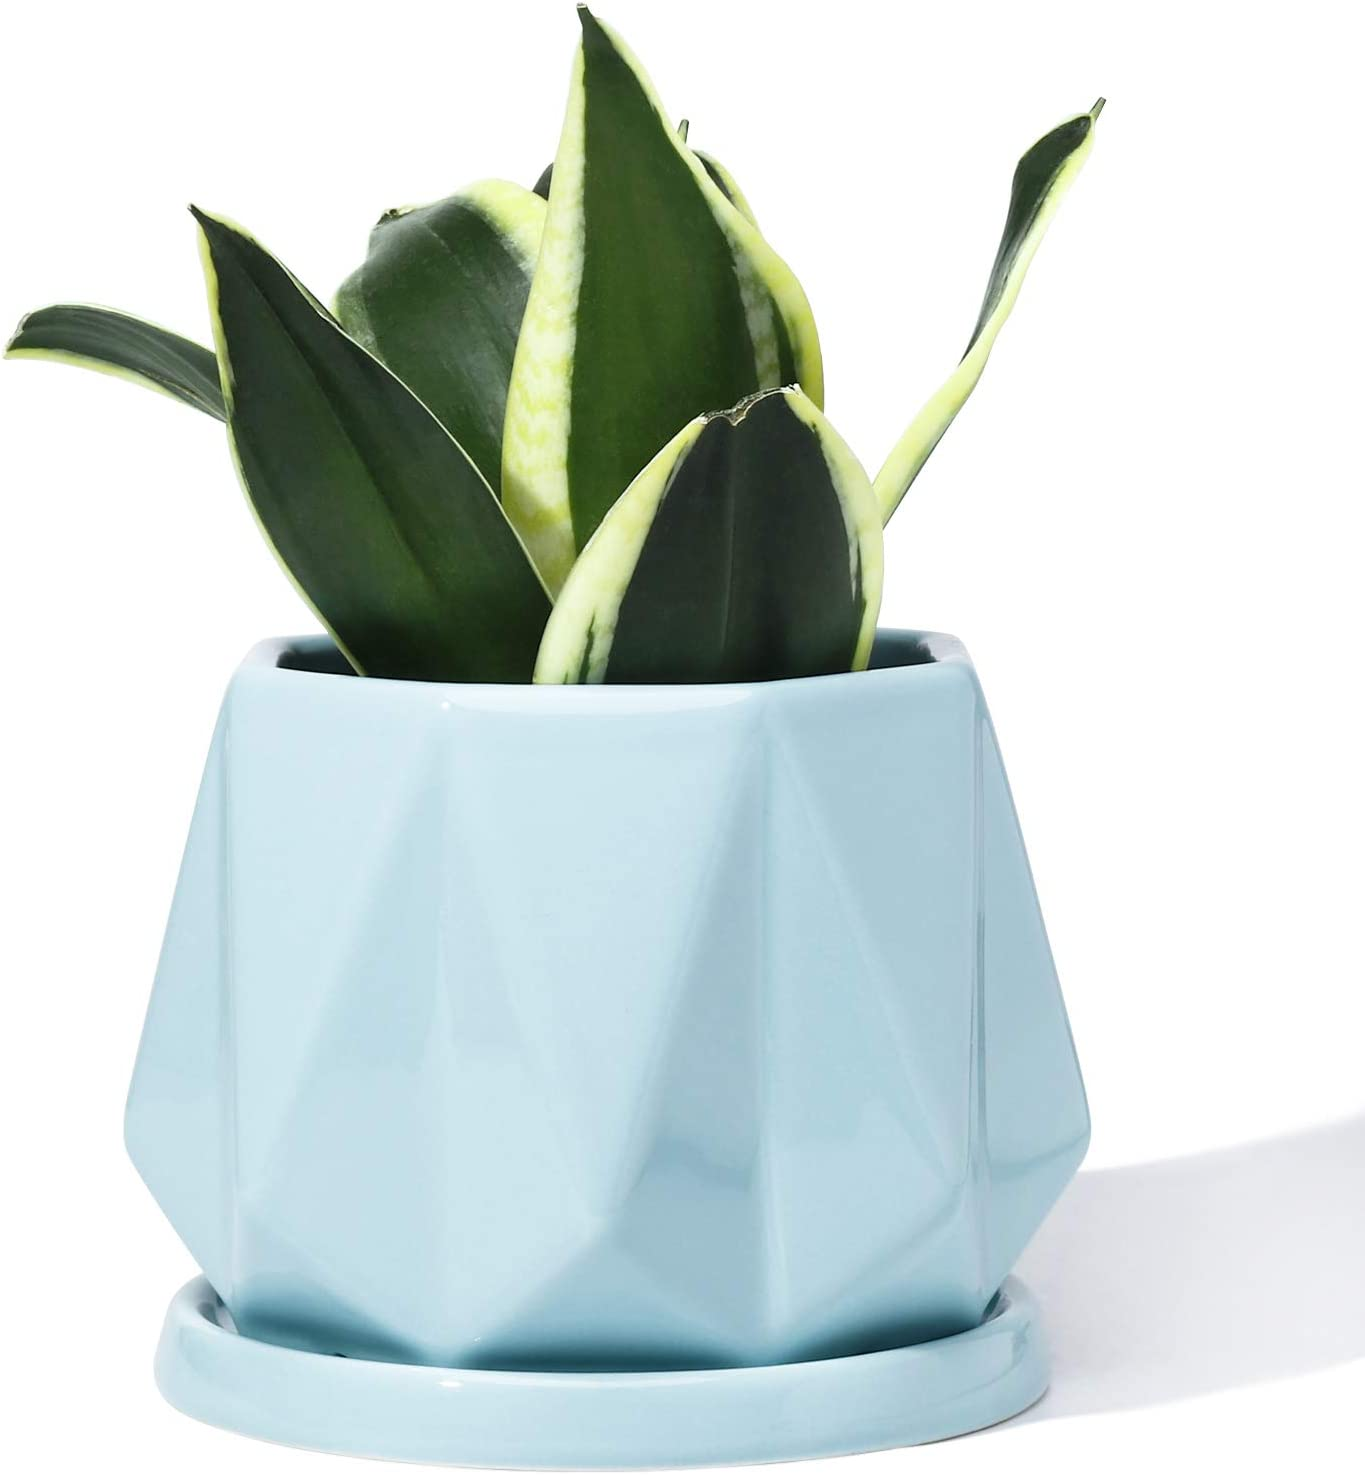 POTEY 052705 Planter Pots Indoor - 4.7 Inch Glazed Ceramic Modern Home Decor Geometric Shaped Planters Indoor Bonsai Container with Drainage Hole&Saucer for Plants Flower Aloe(Plants Not Included)